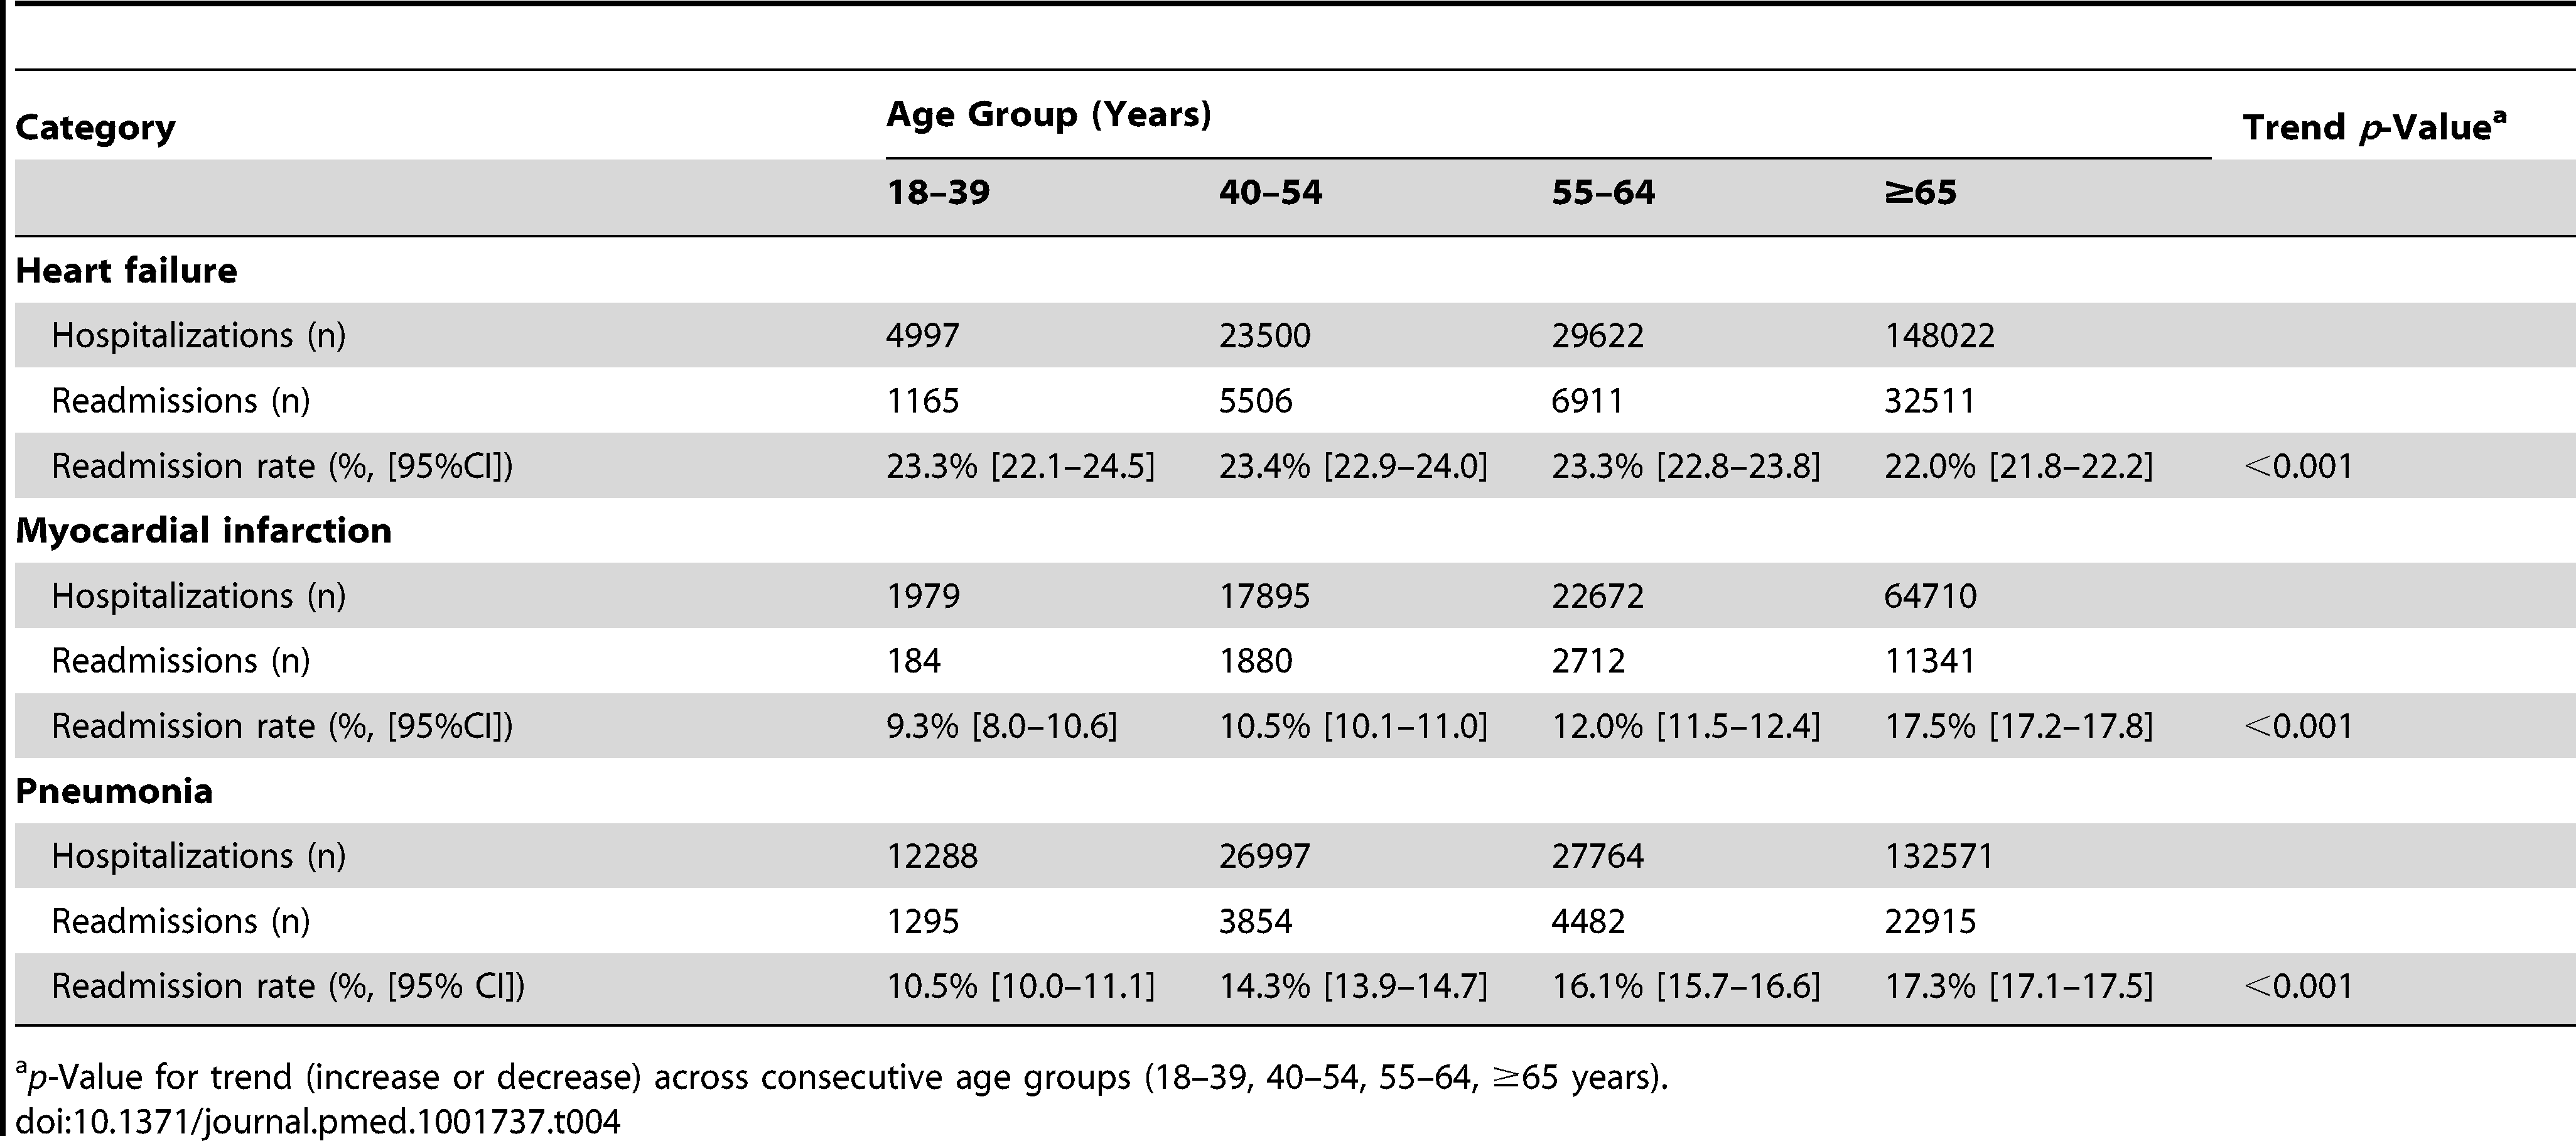 Hospitalization and readmissions among age groups for HF, AMI, and pneumonia.